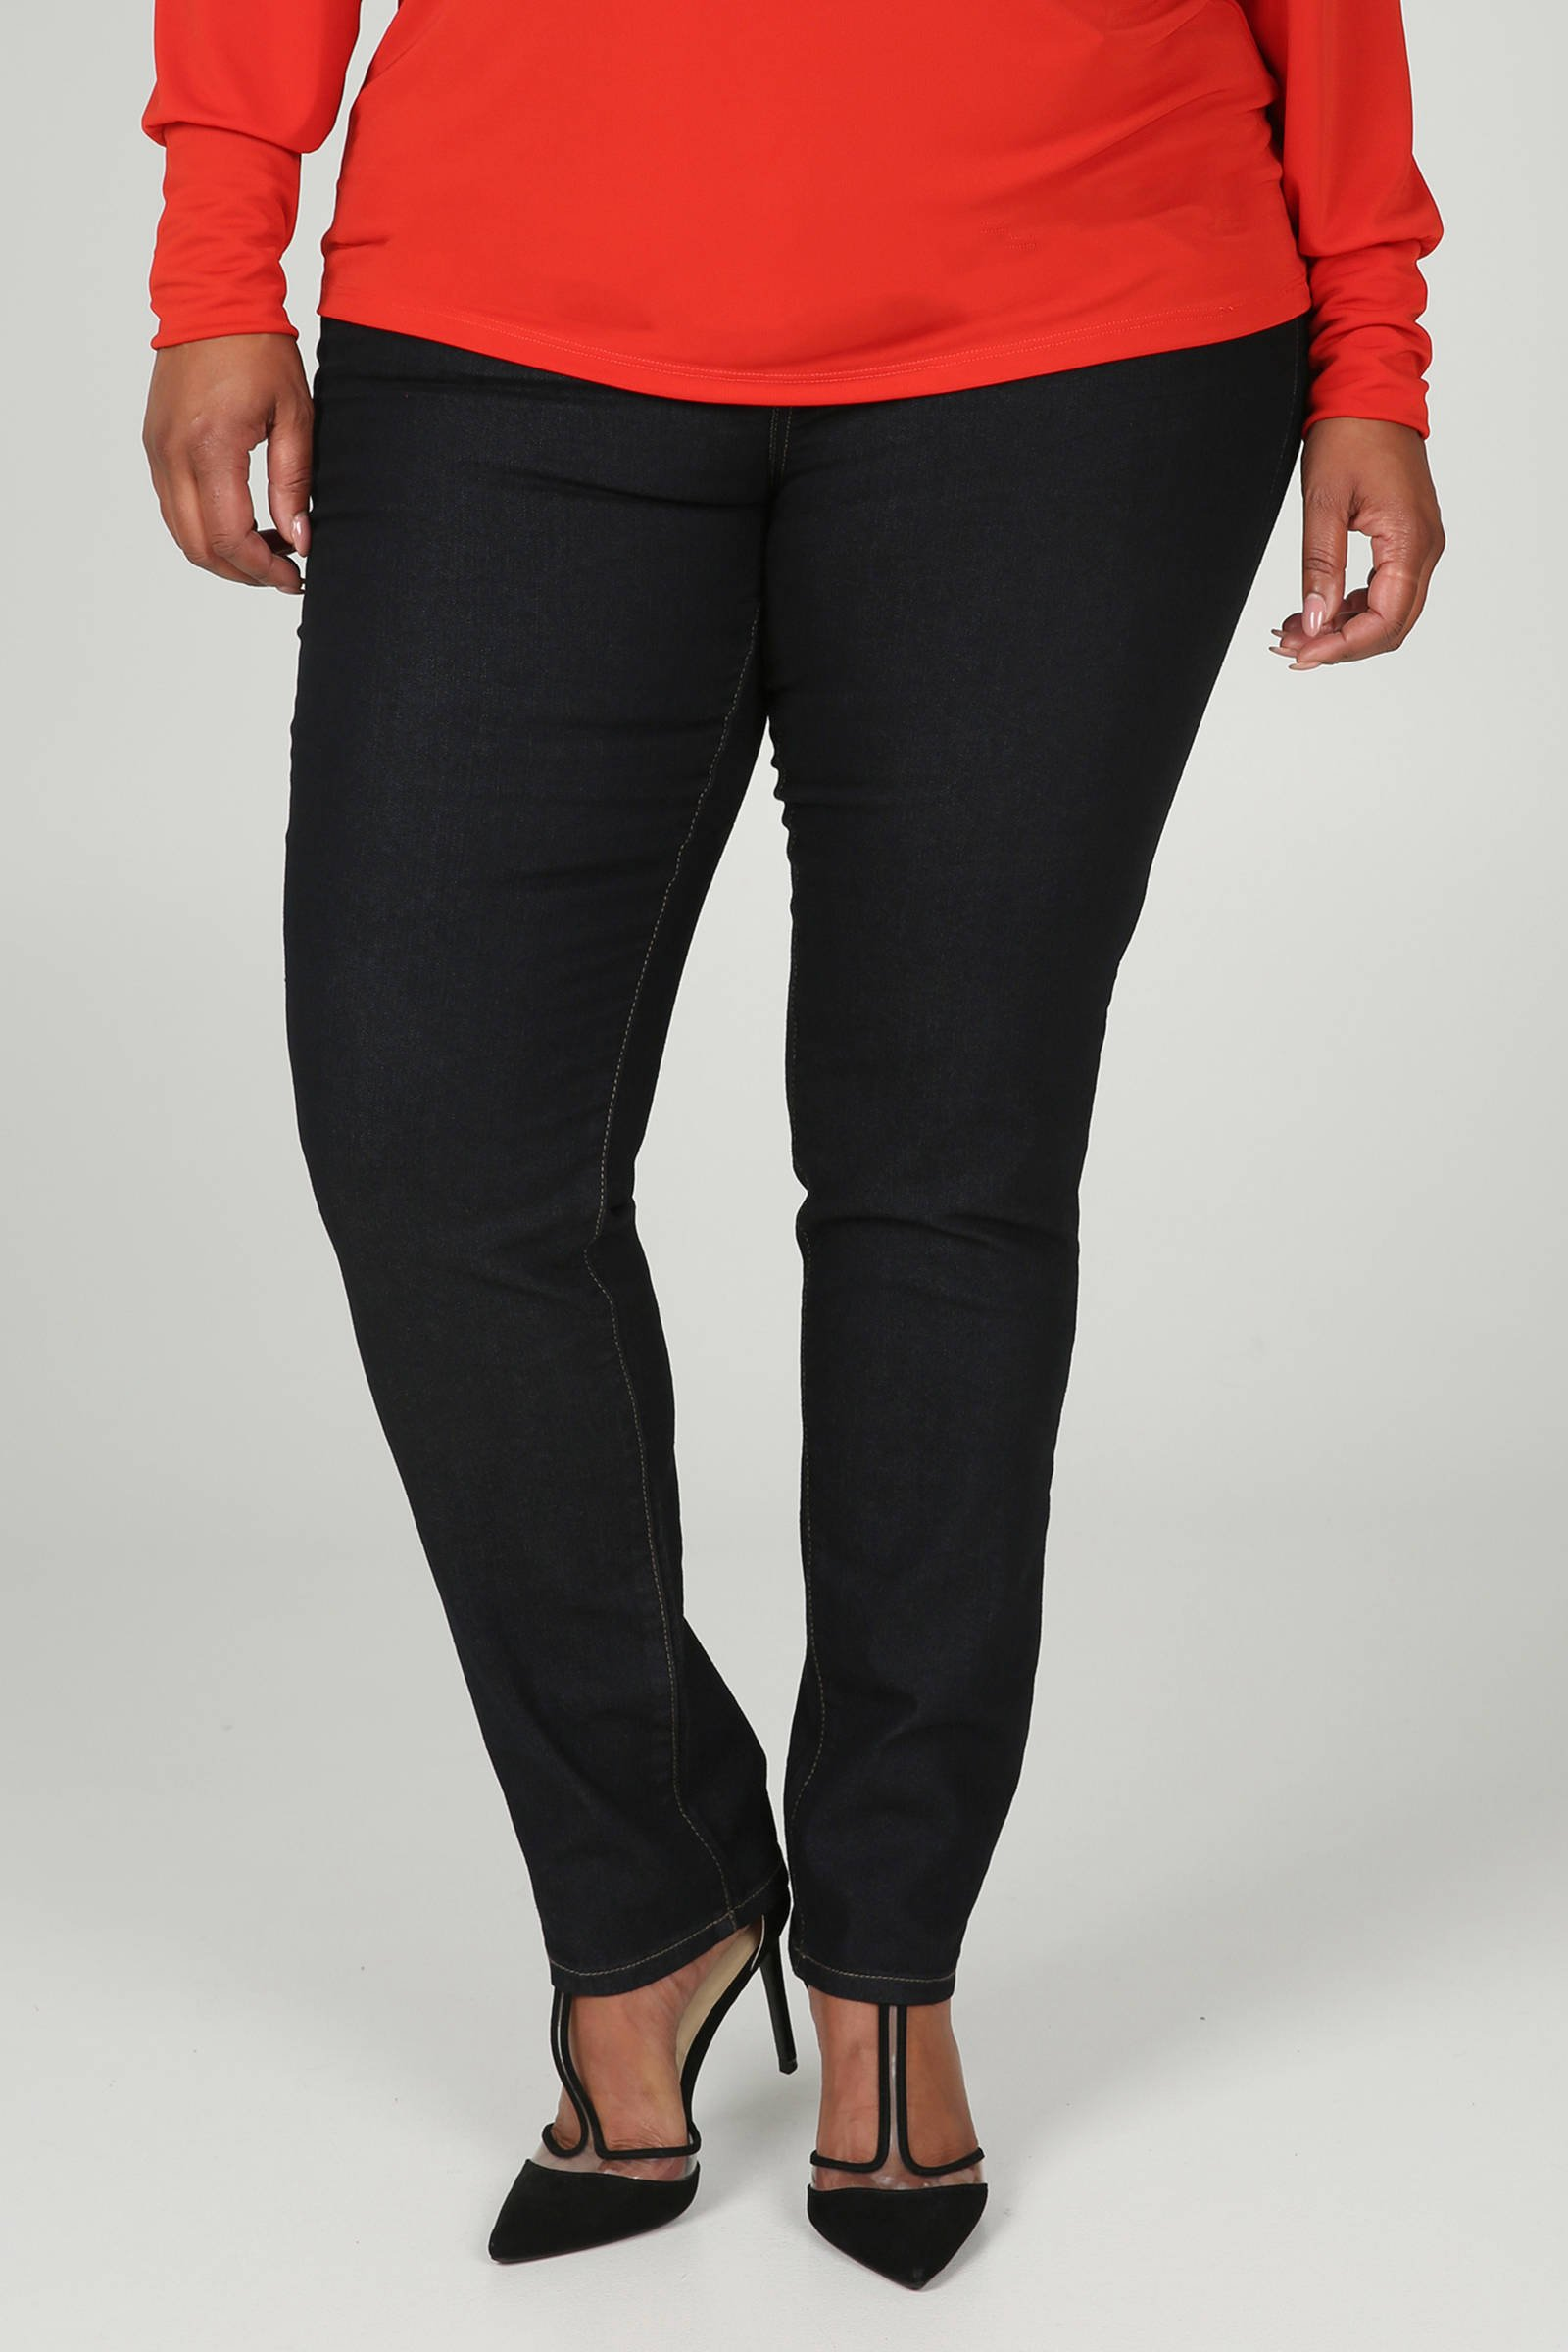 b9466abc paprika-high-waist-slim-fit-jeans-donkerblauw-dames-dark-denim-5400578478259.jpg